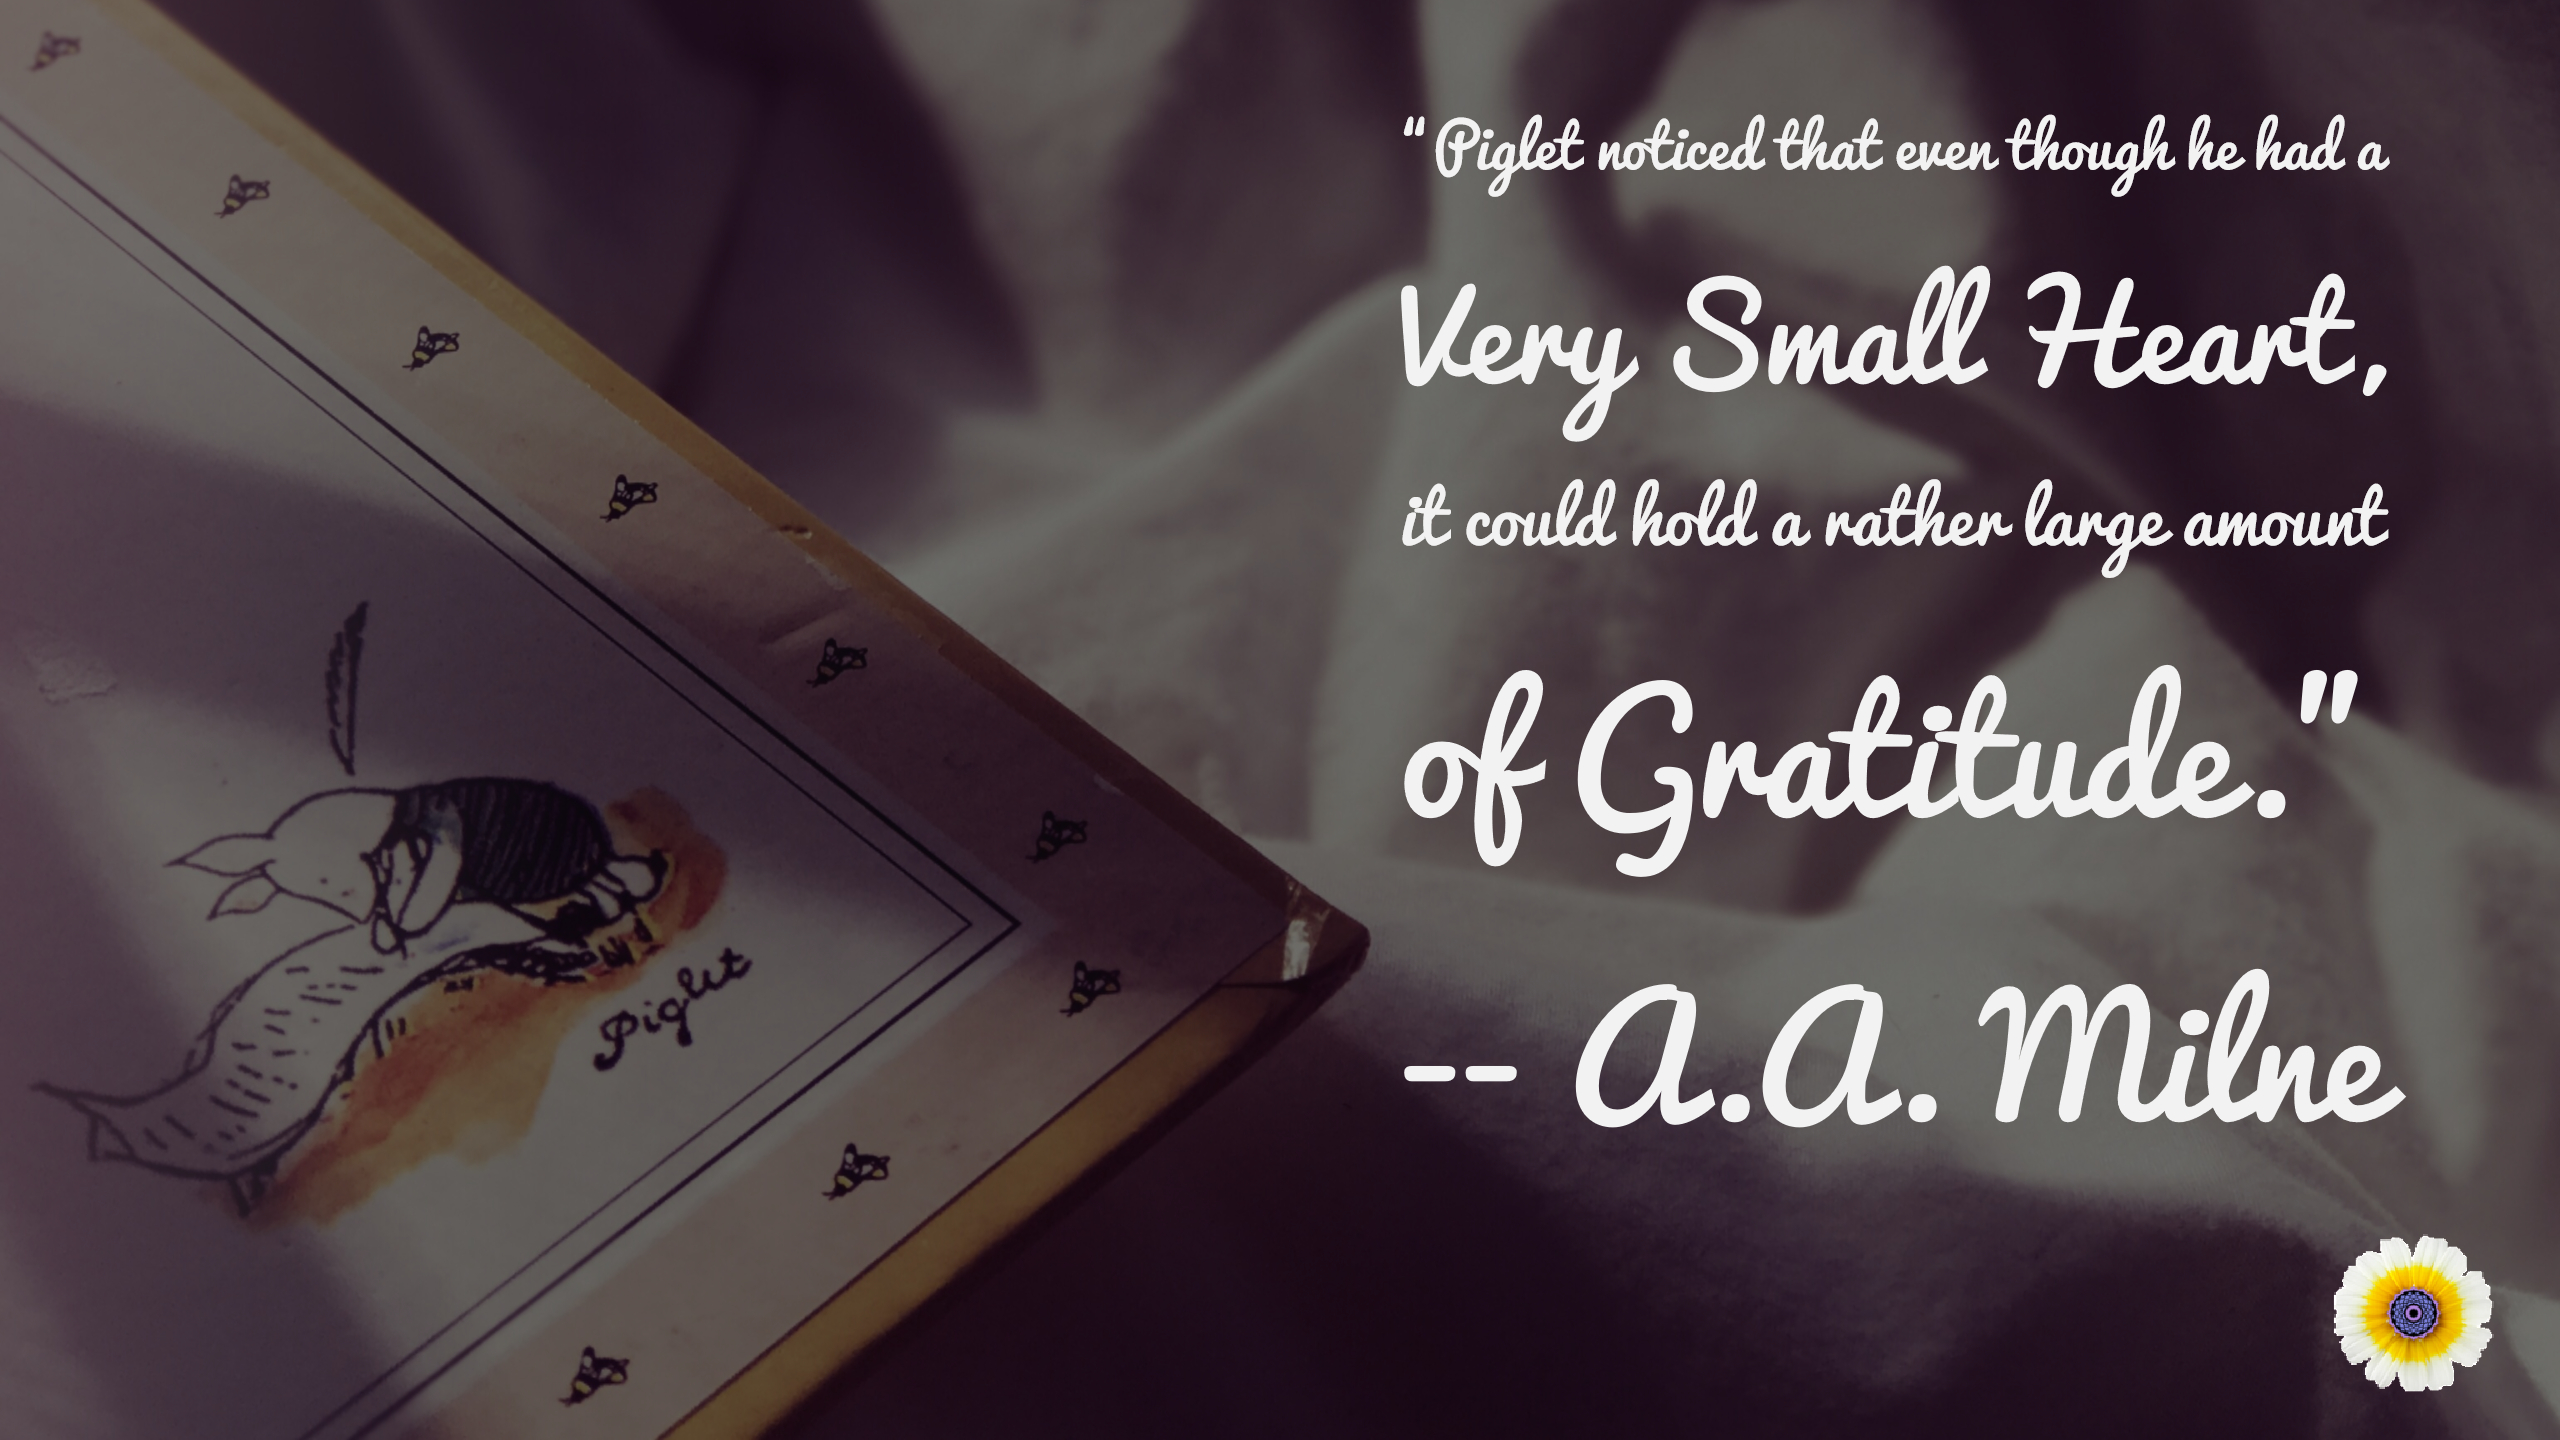 """Piglet noticed that even though he had a Very Small Heart, it could hold a rather large amount of Gratitude."" A.A. Milne"